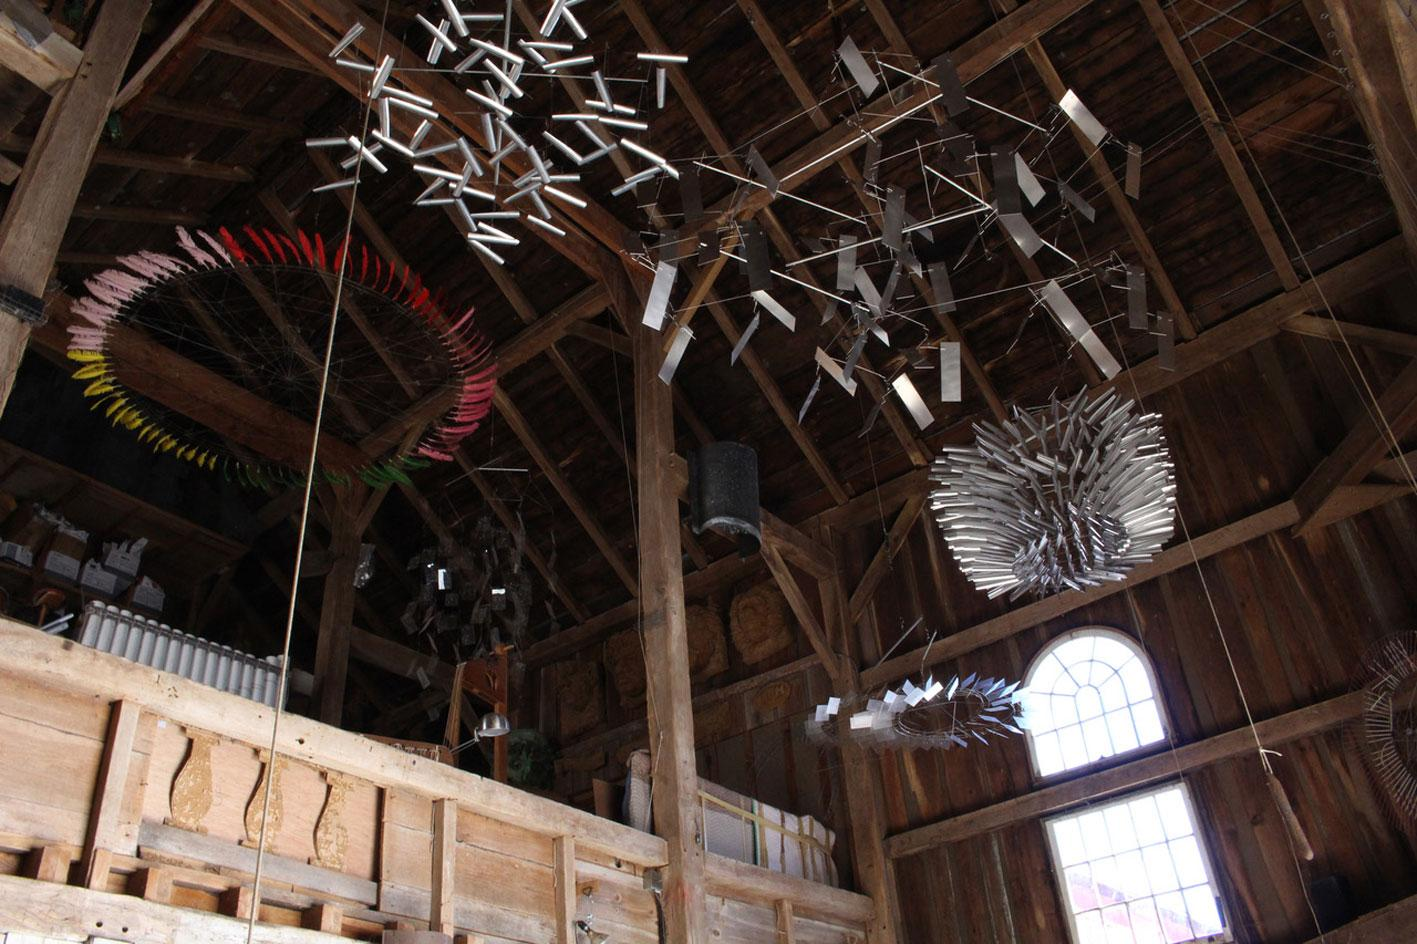 interior of Tim Prentice'sConnecticut-based studio with finished sculptires and worksin progress